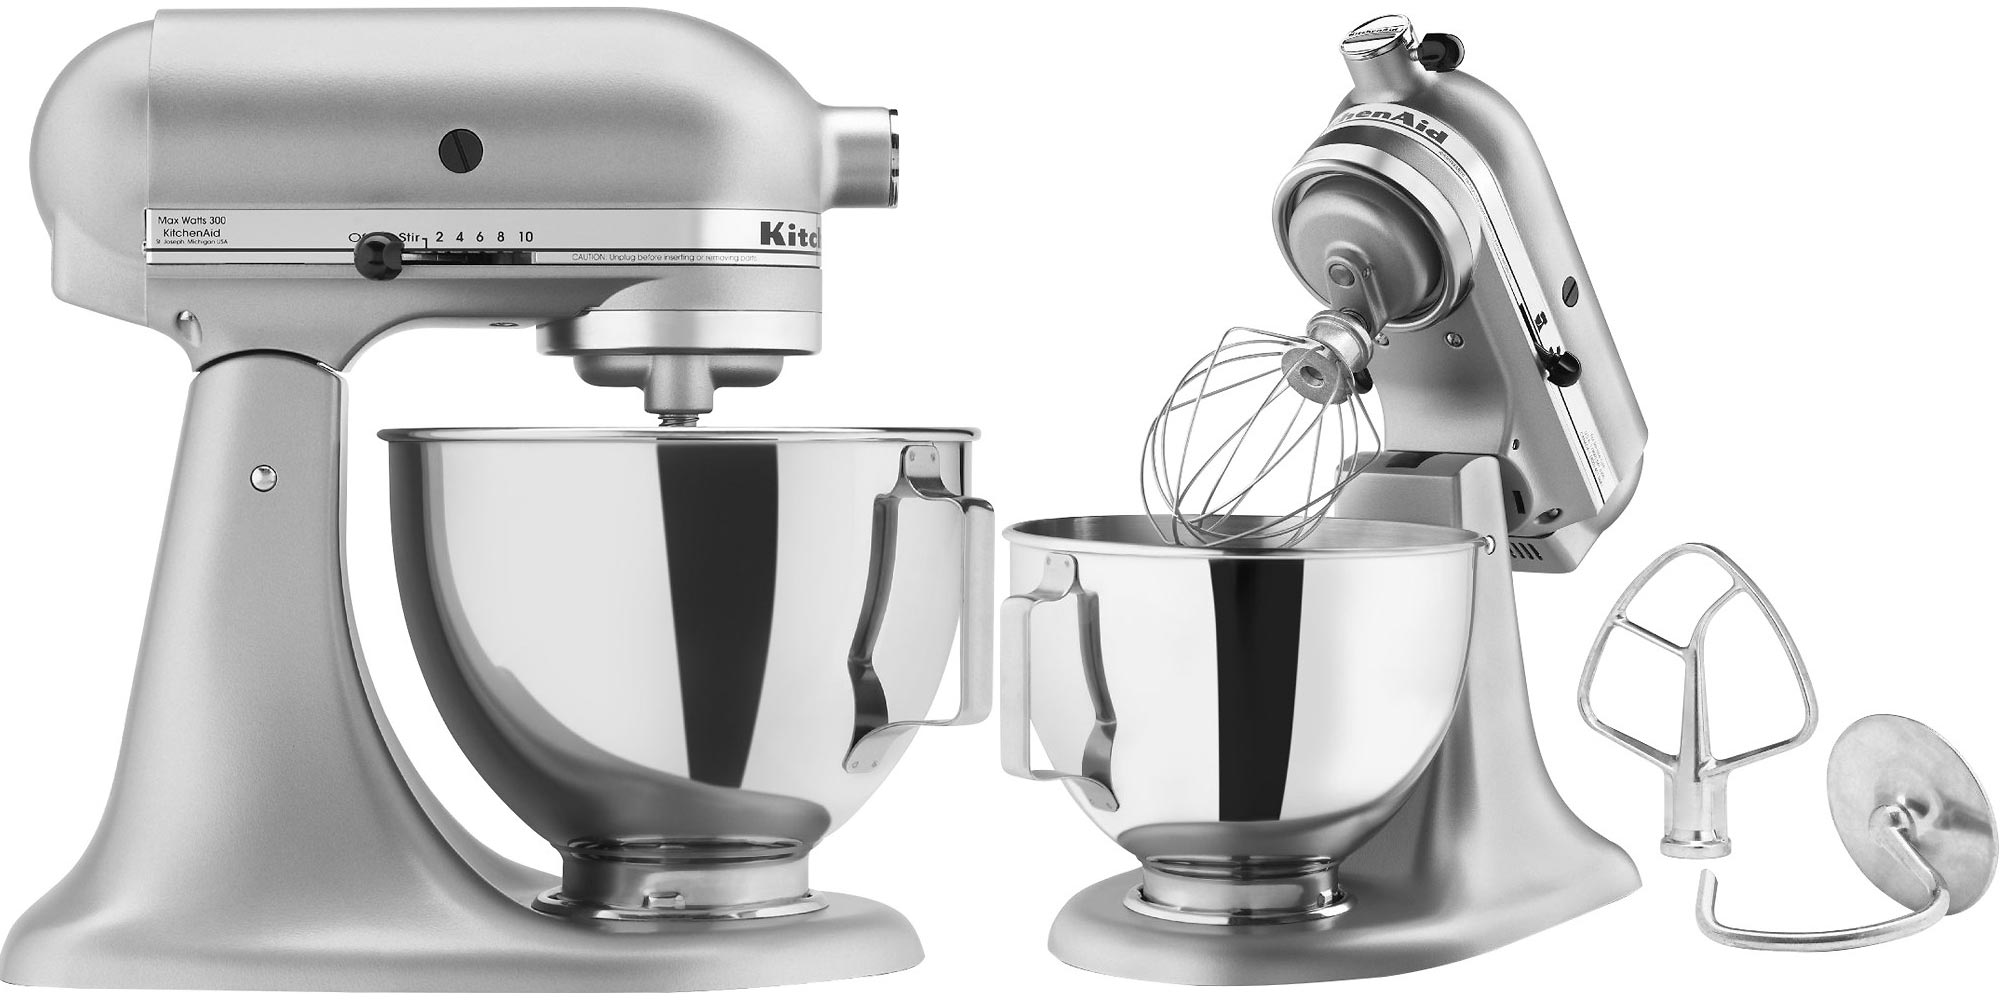 best buy kitchen aid wooden sink kitchenaid s 4 5 qt mixer drops to 190 at today only